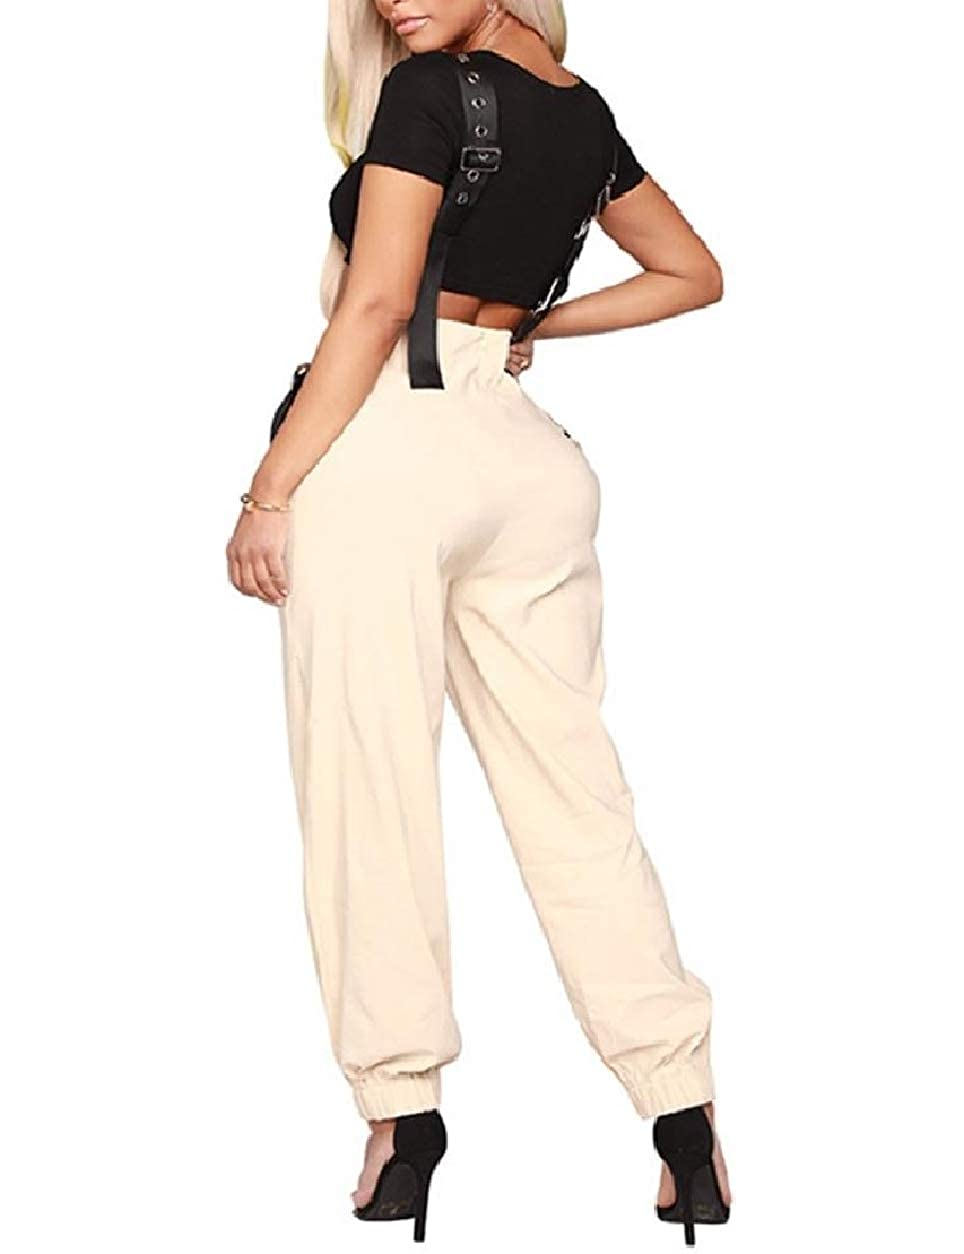 SportsX Womens Slim-Fit with Pockets Baggy Overalls Fall Jumpsuit Pants